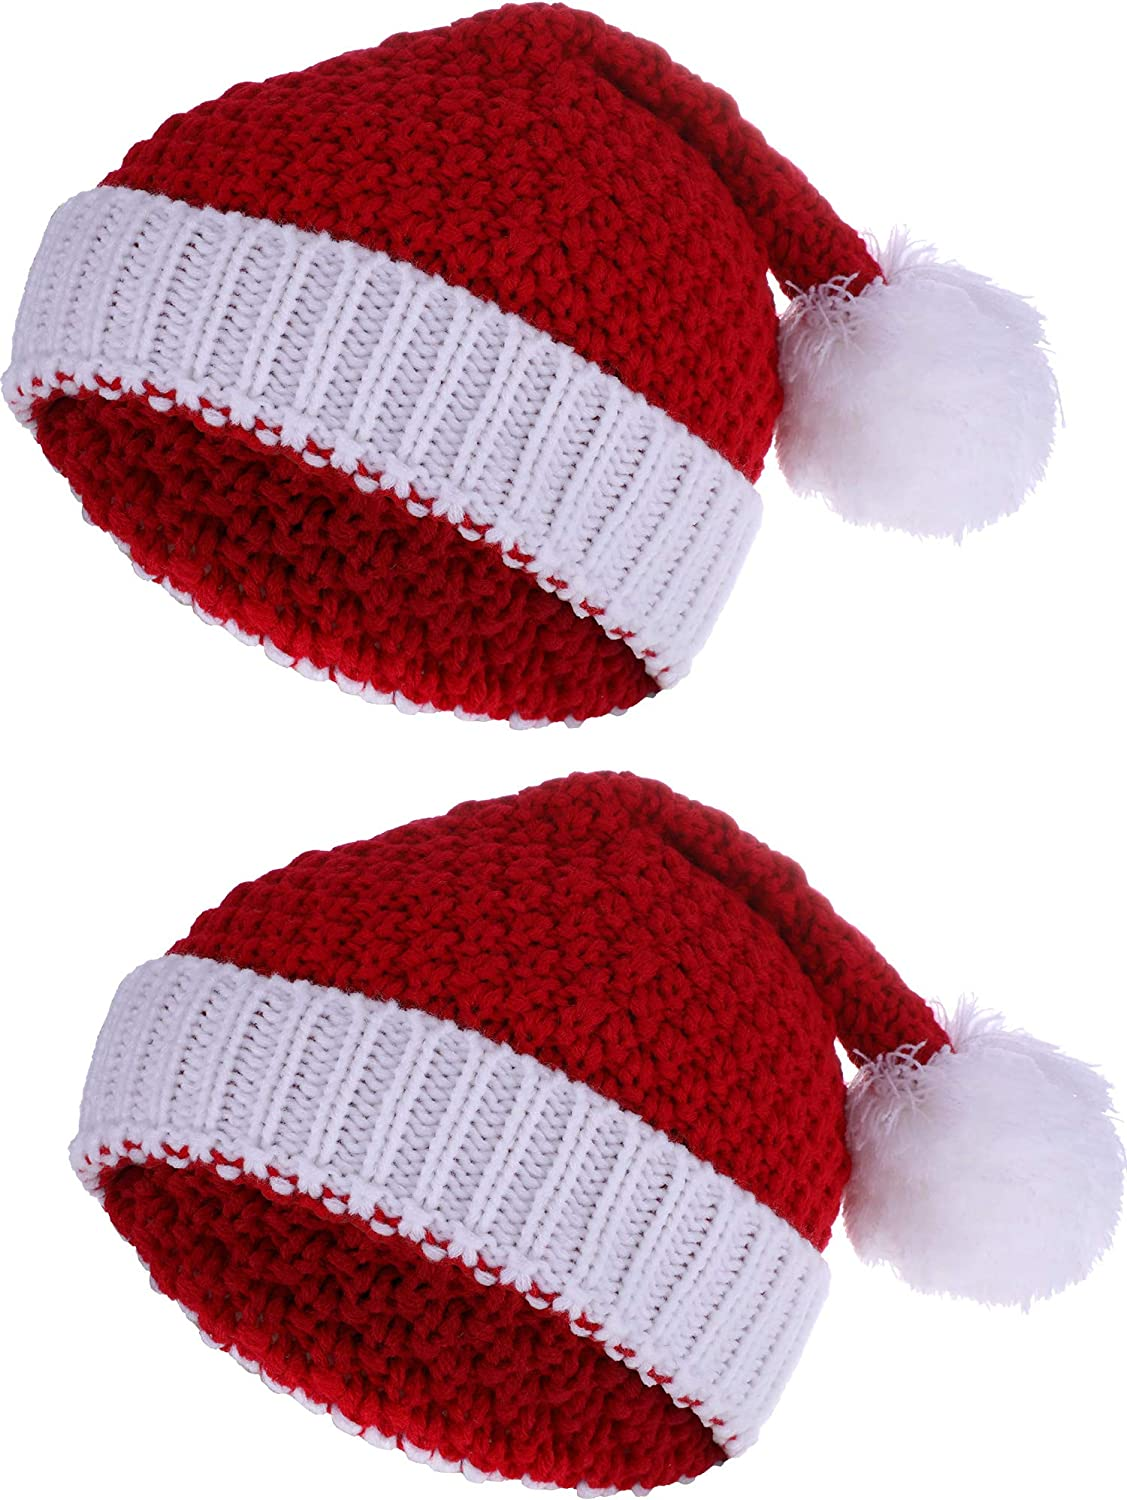 Pangda 2 low-pricing Pieces Christmas Beanie Winter Free shipping anywhere in the nation Crochet Sant Hat Knitted